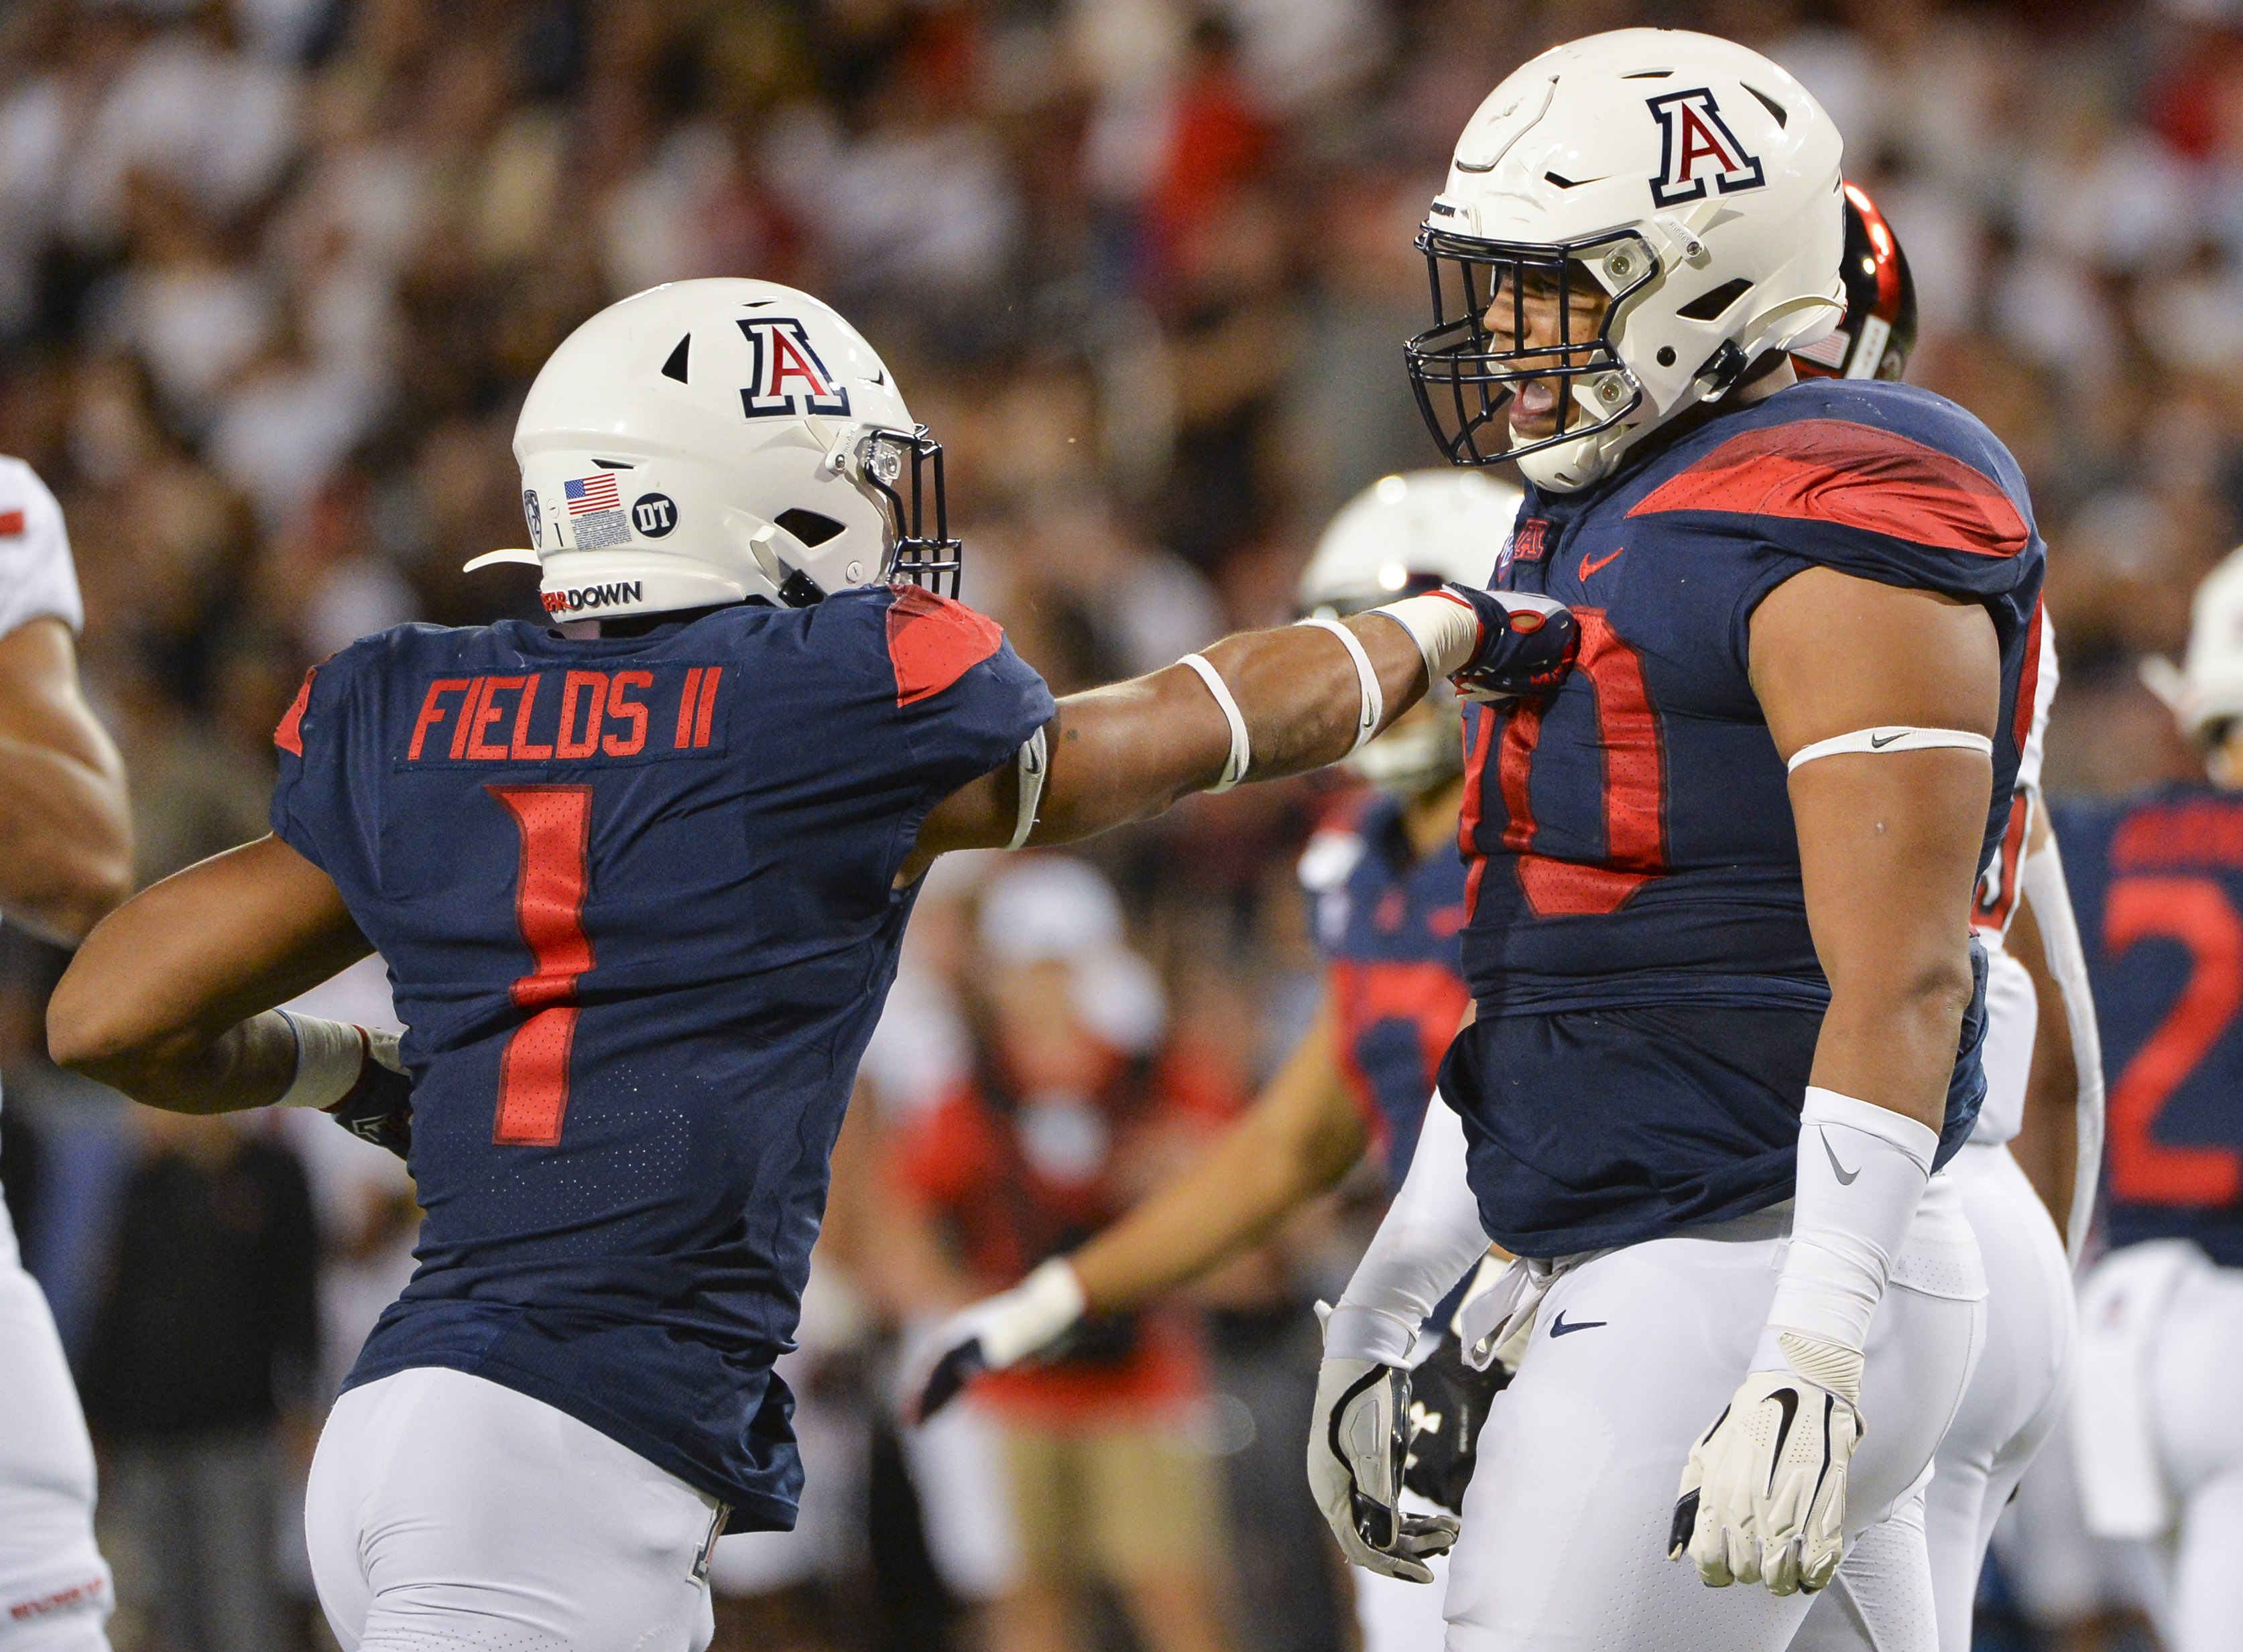 arizona-wildcats-college-football-texas-tech-game-grades-offense-defense-special-teams-coaching